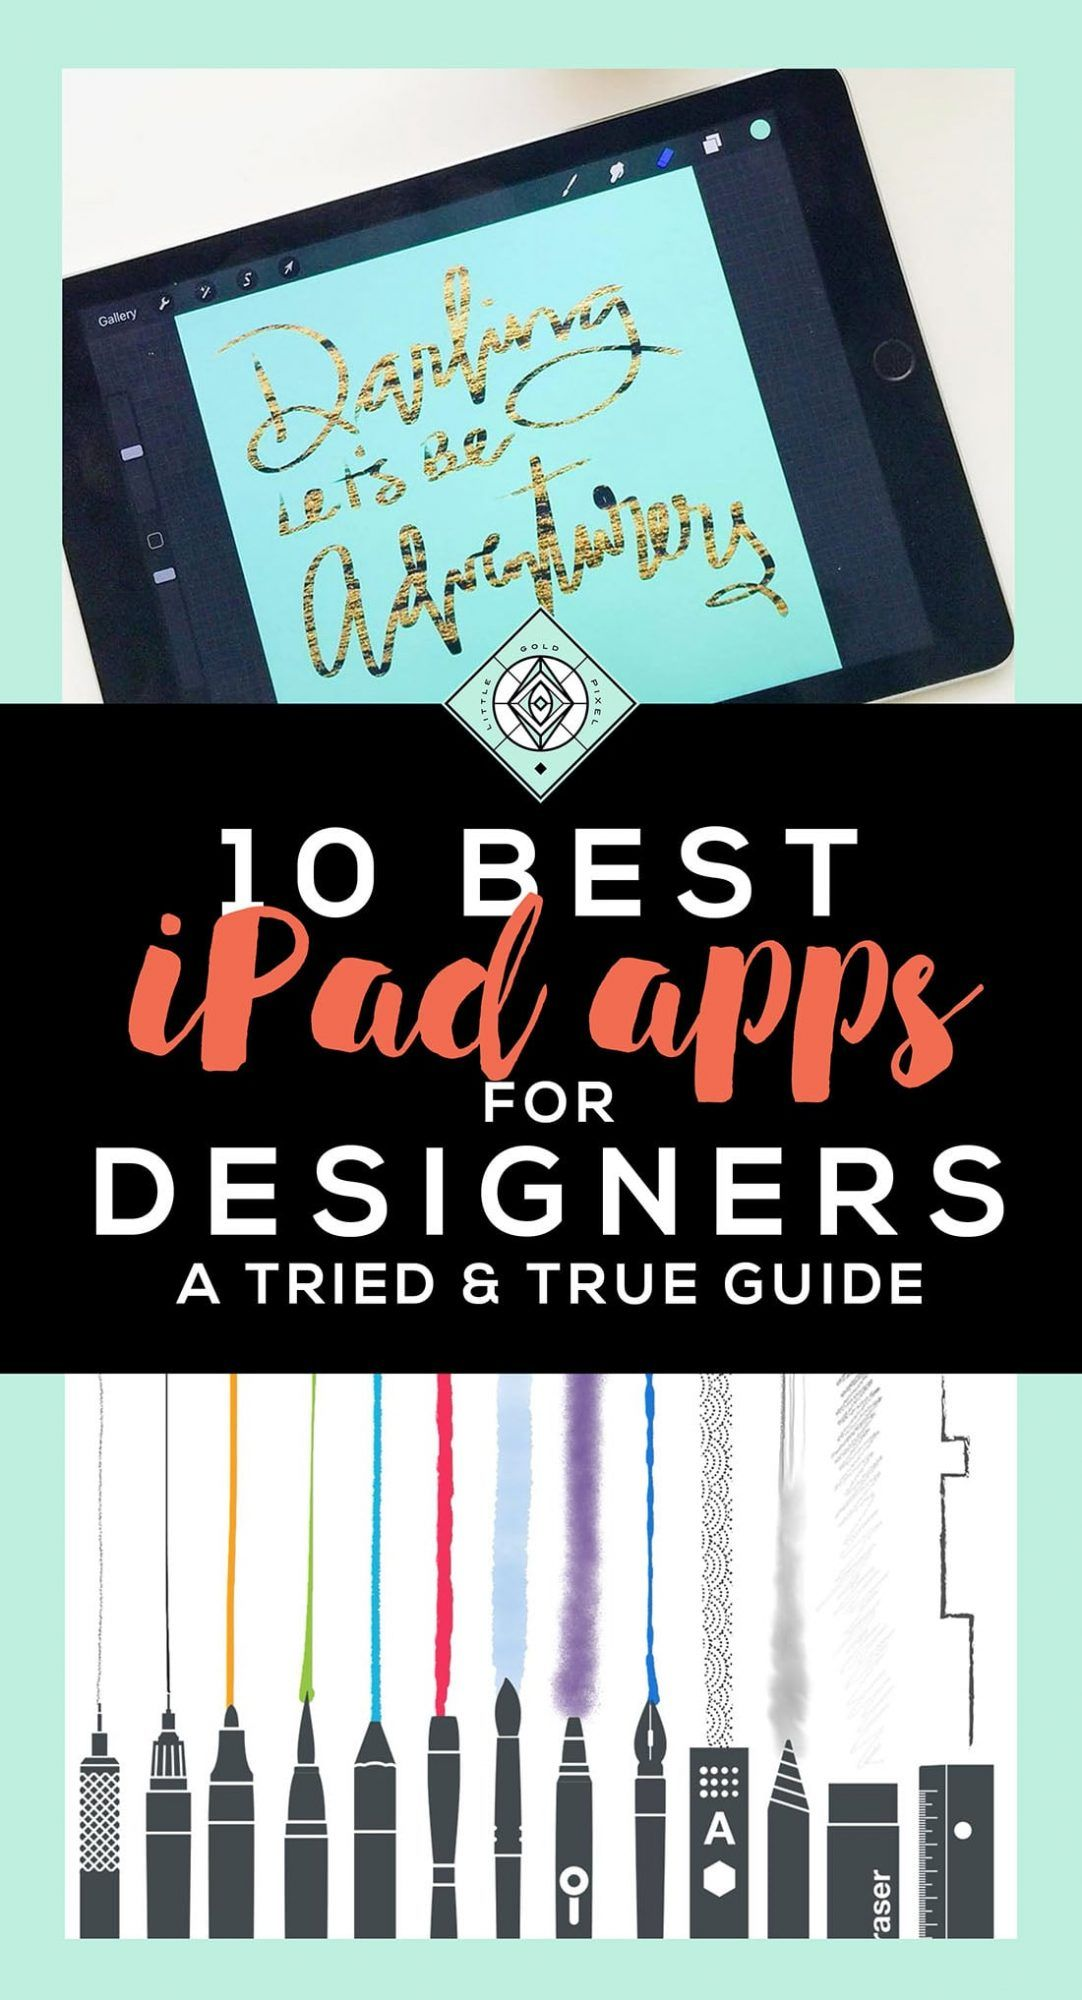 10 Best iPad Apps for Designers | Ipad art, Ipad, Ipad pro ...